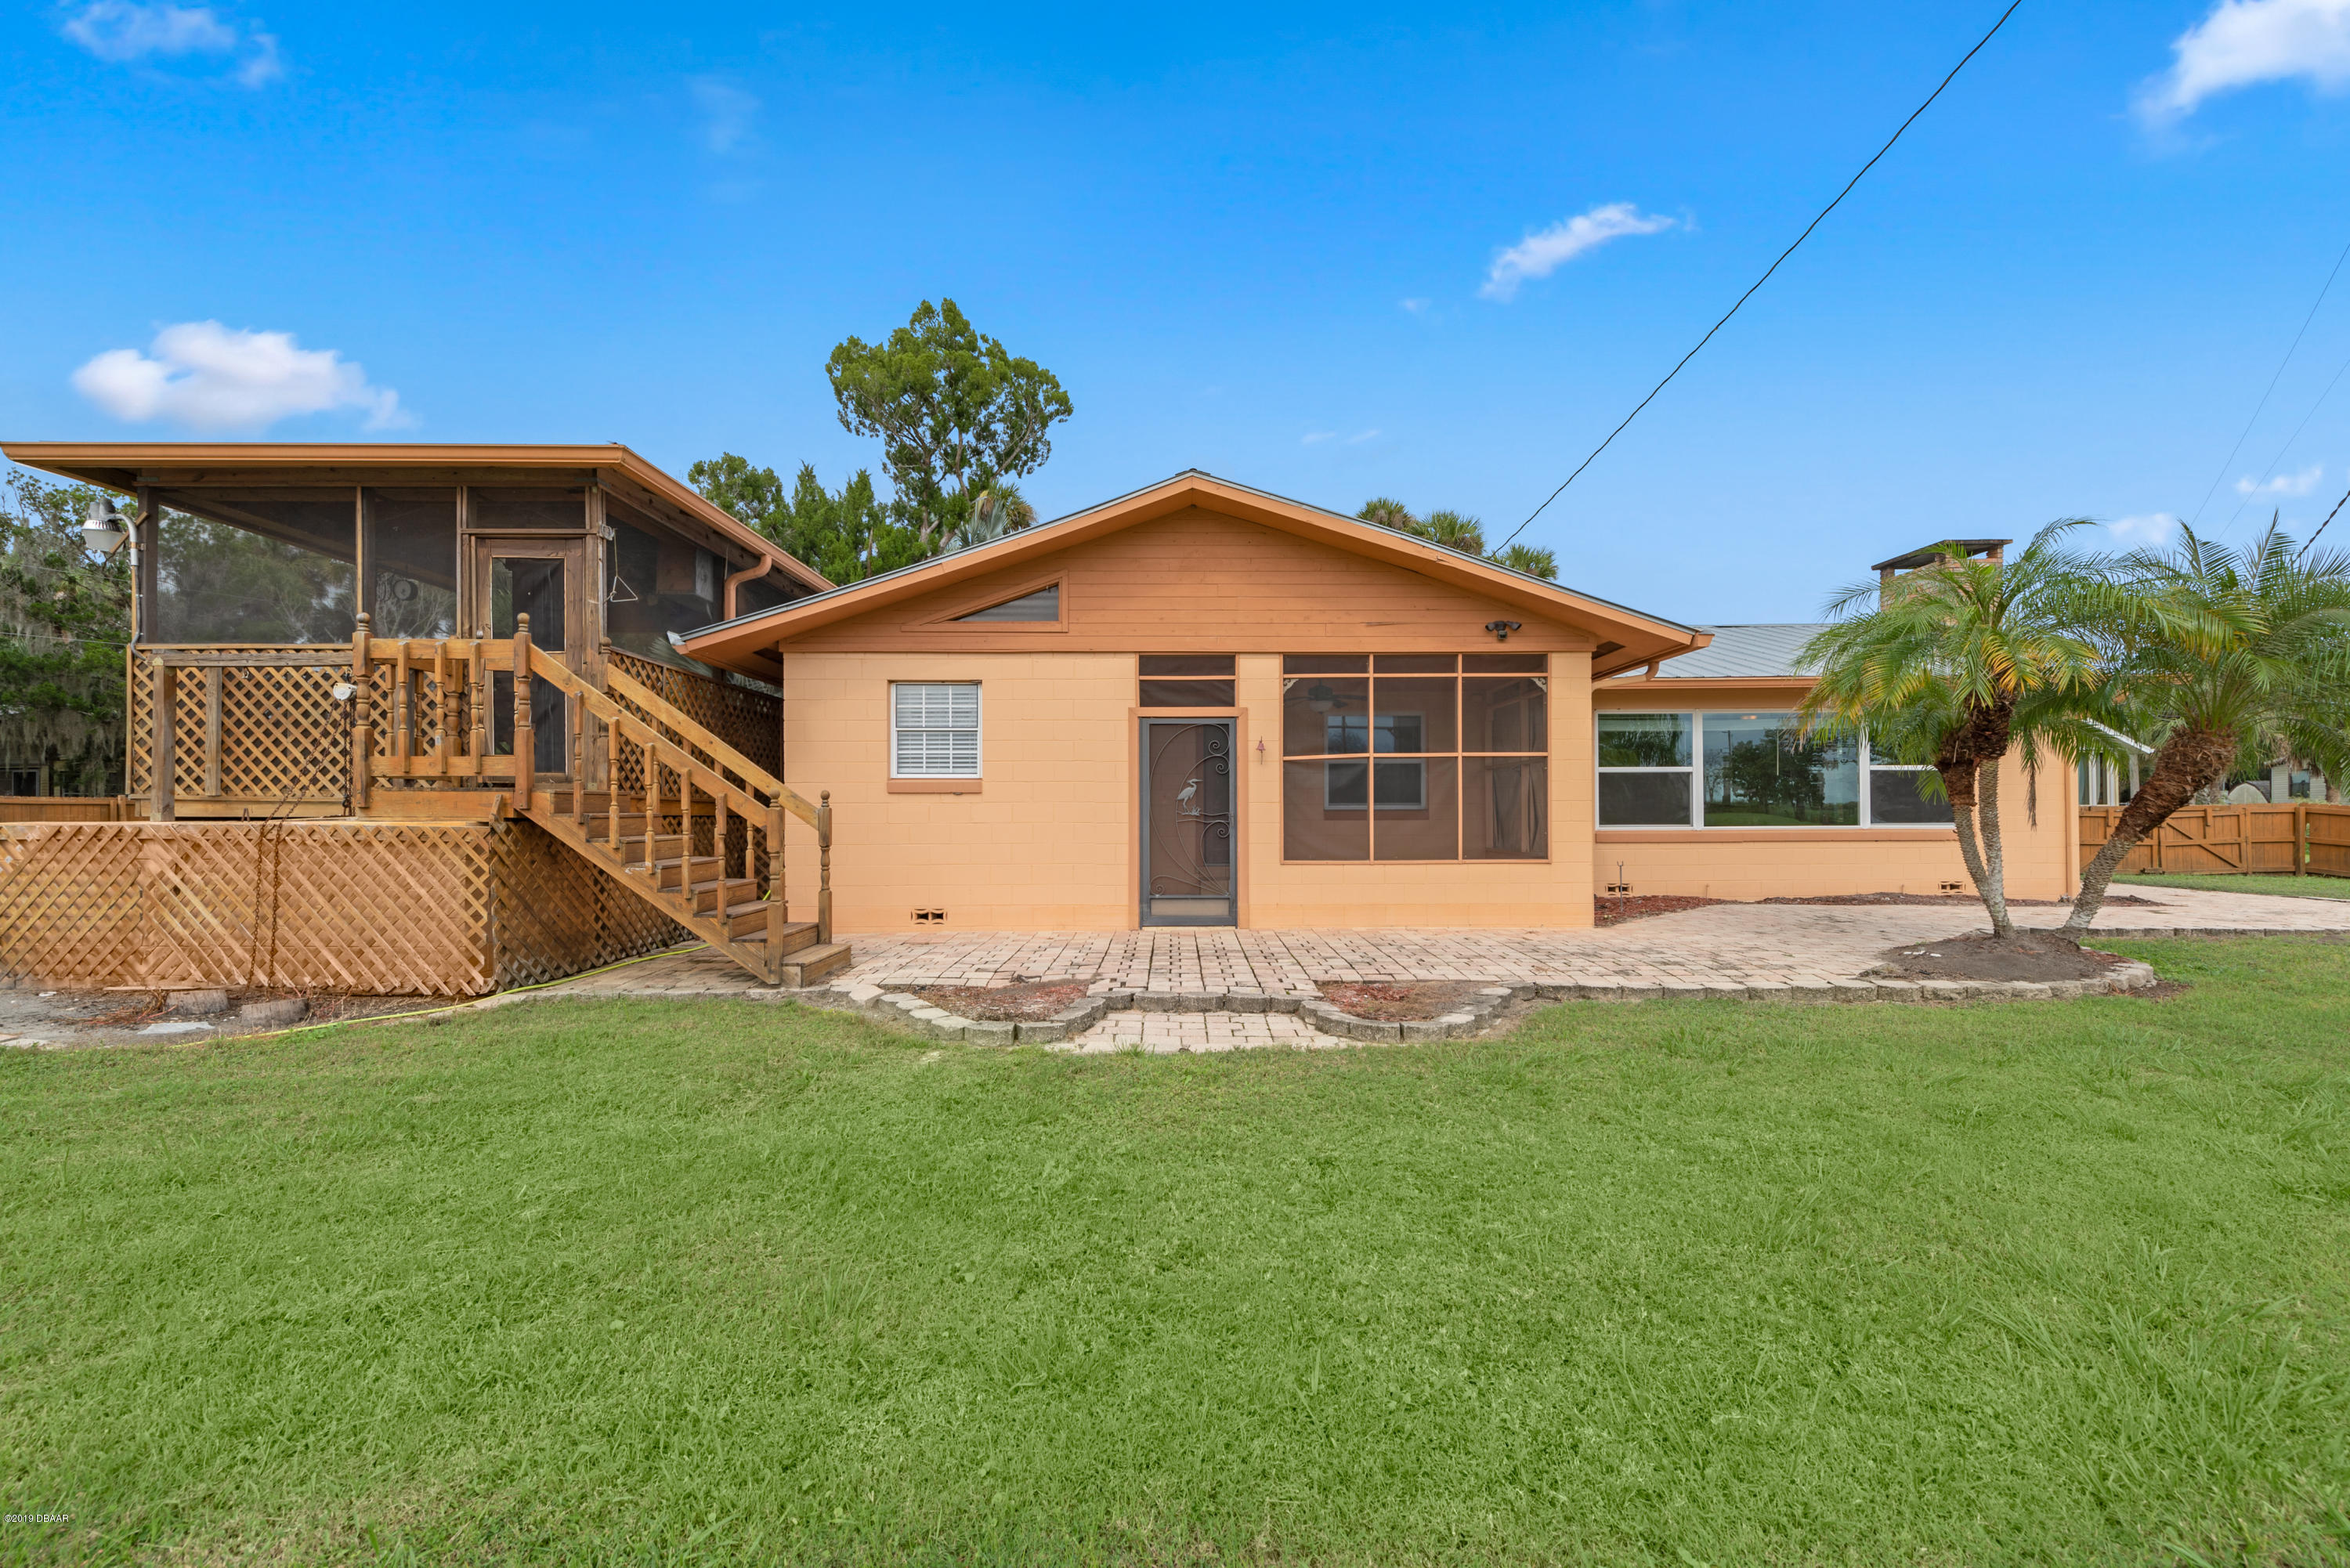 8274 Baxter Point Mims - 2